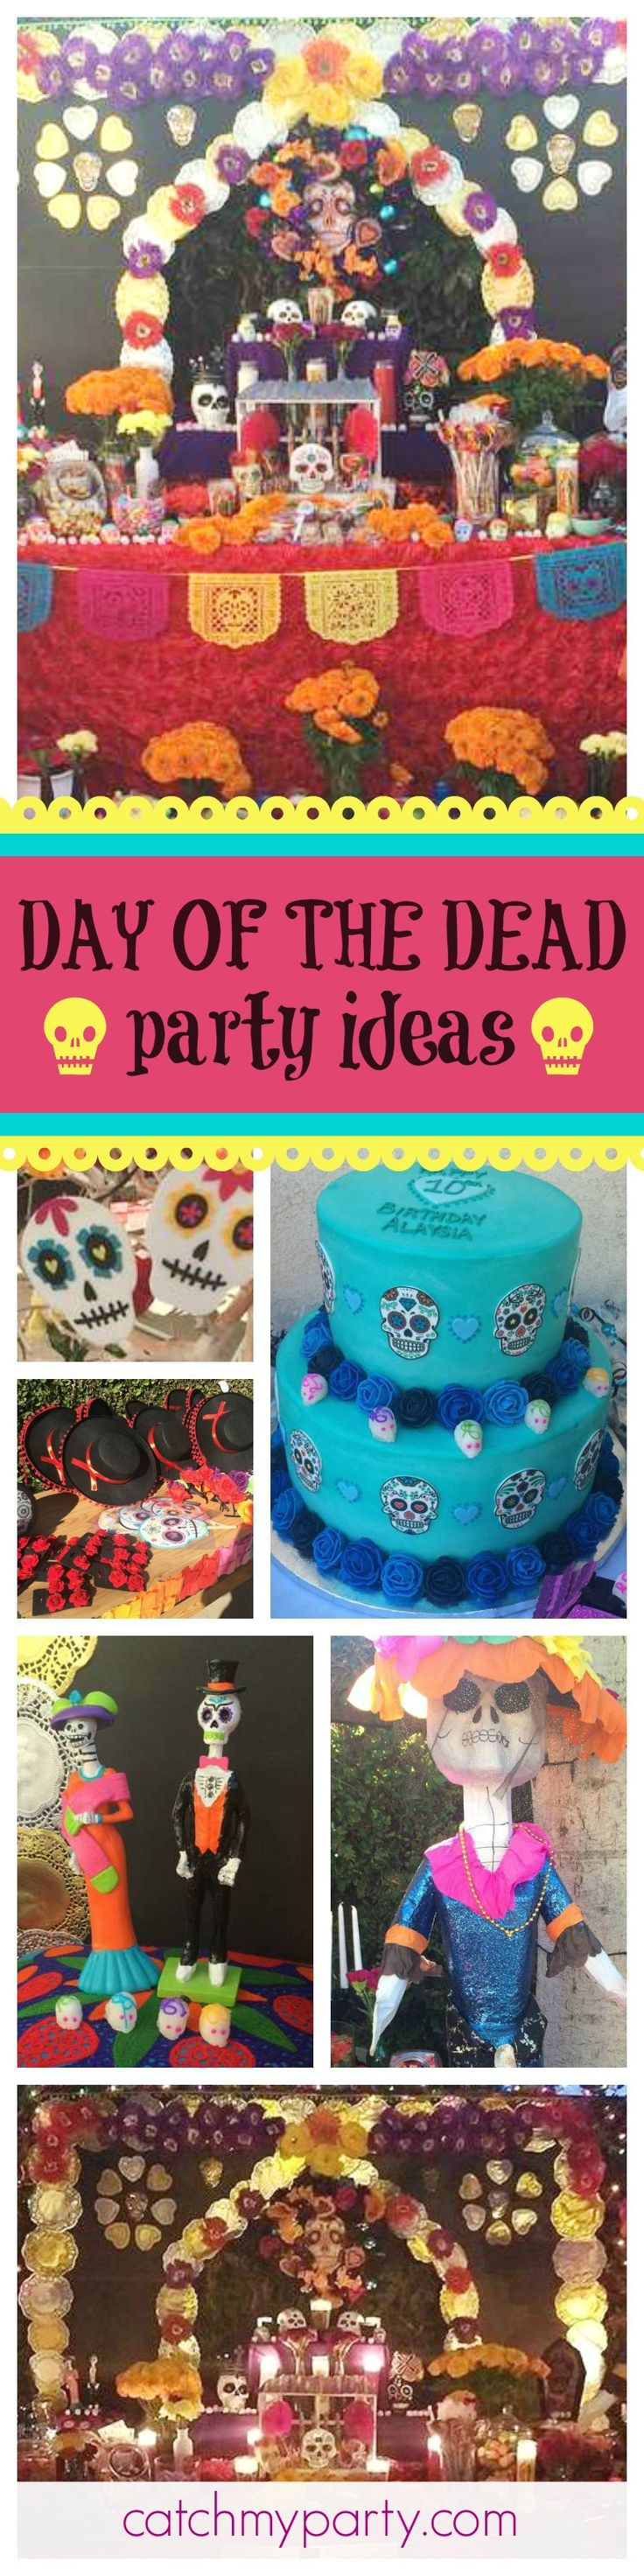 check out this awesome day of the dead themed halloween party the colorful decorations are